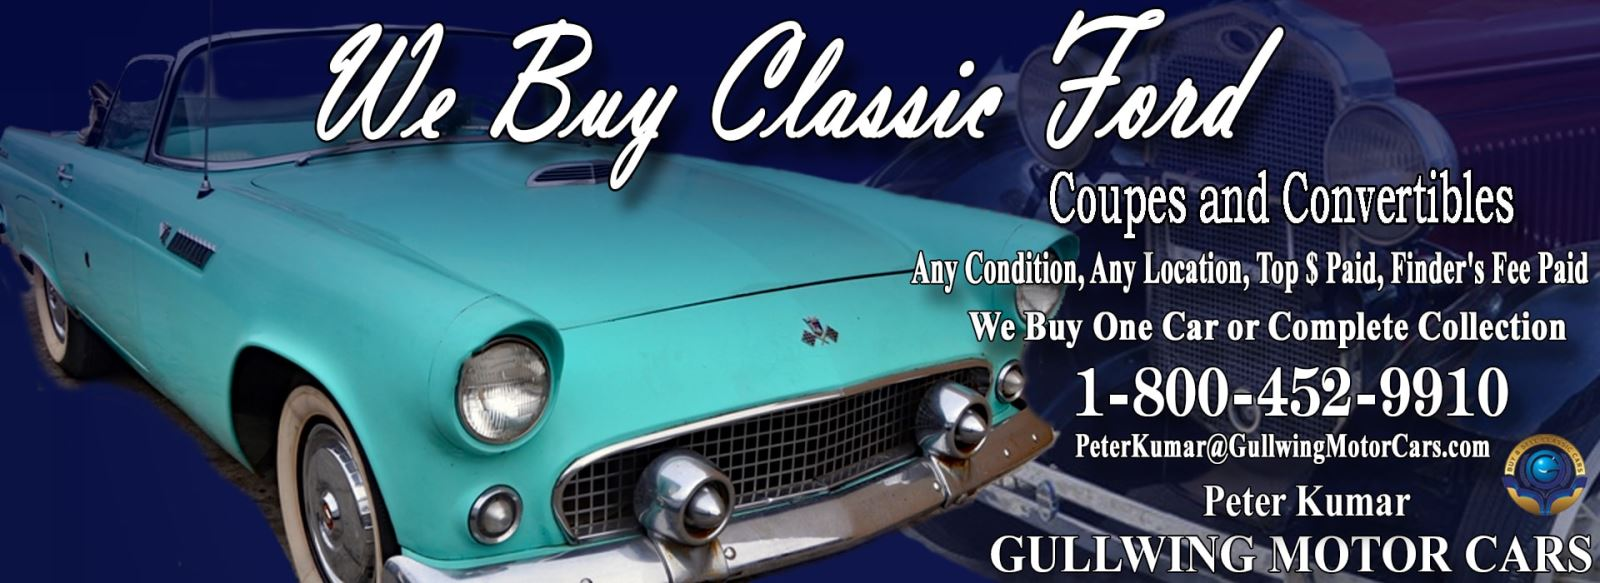 Classic Ford for sale, we buy vintage Ford. Call Peter Kumar. Gullwing Motor